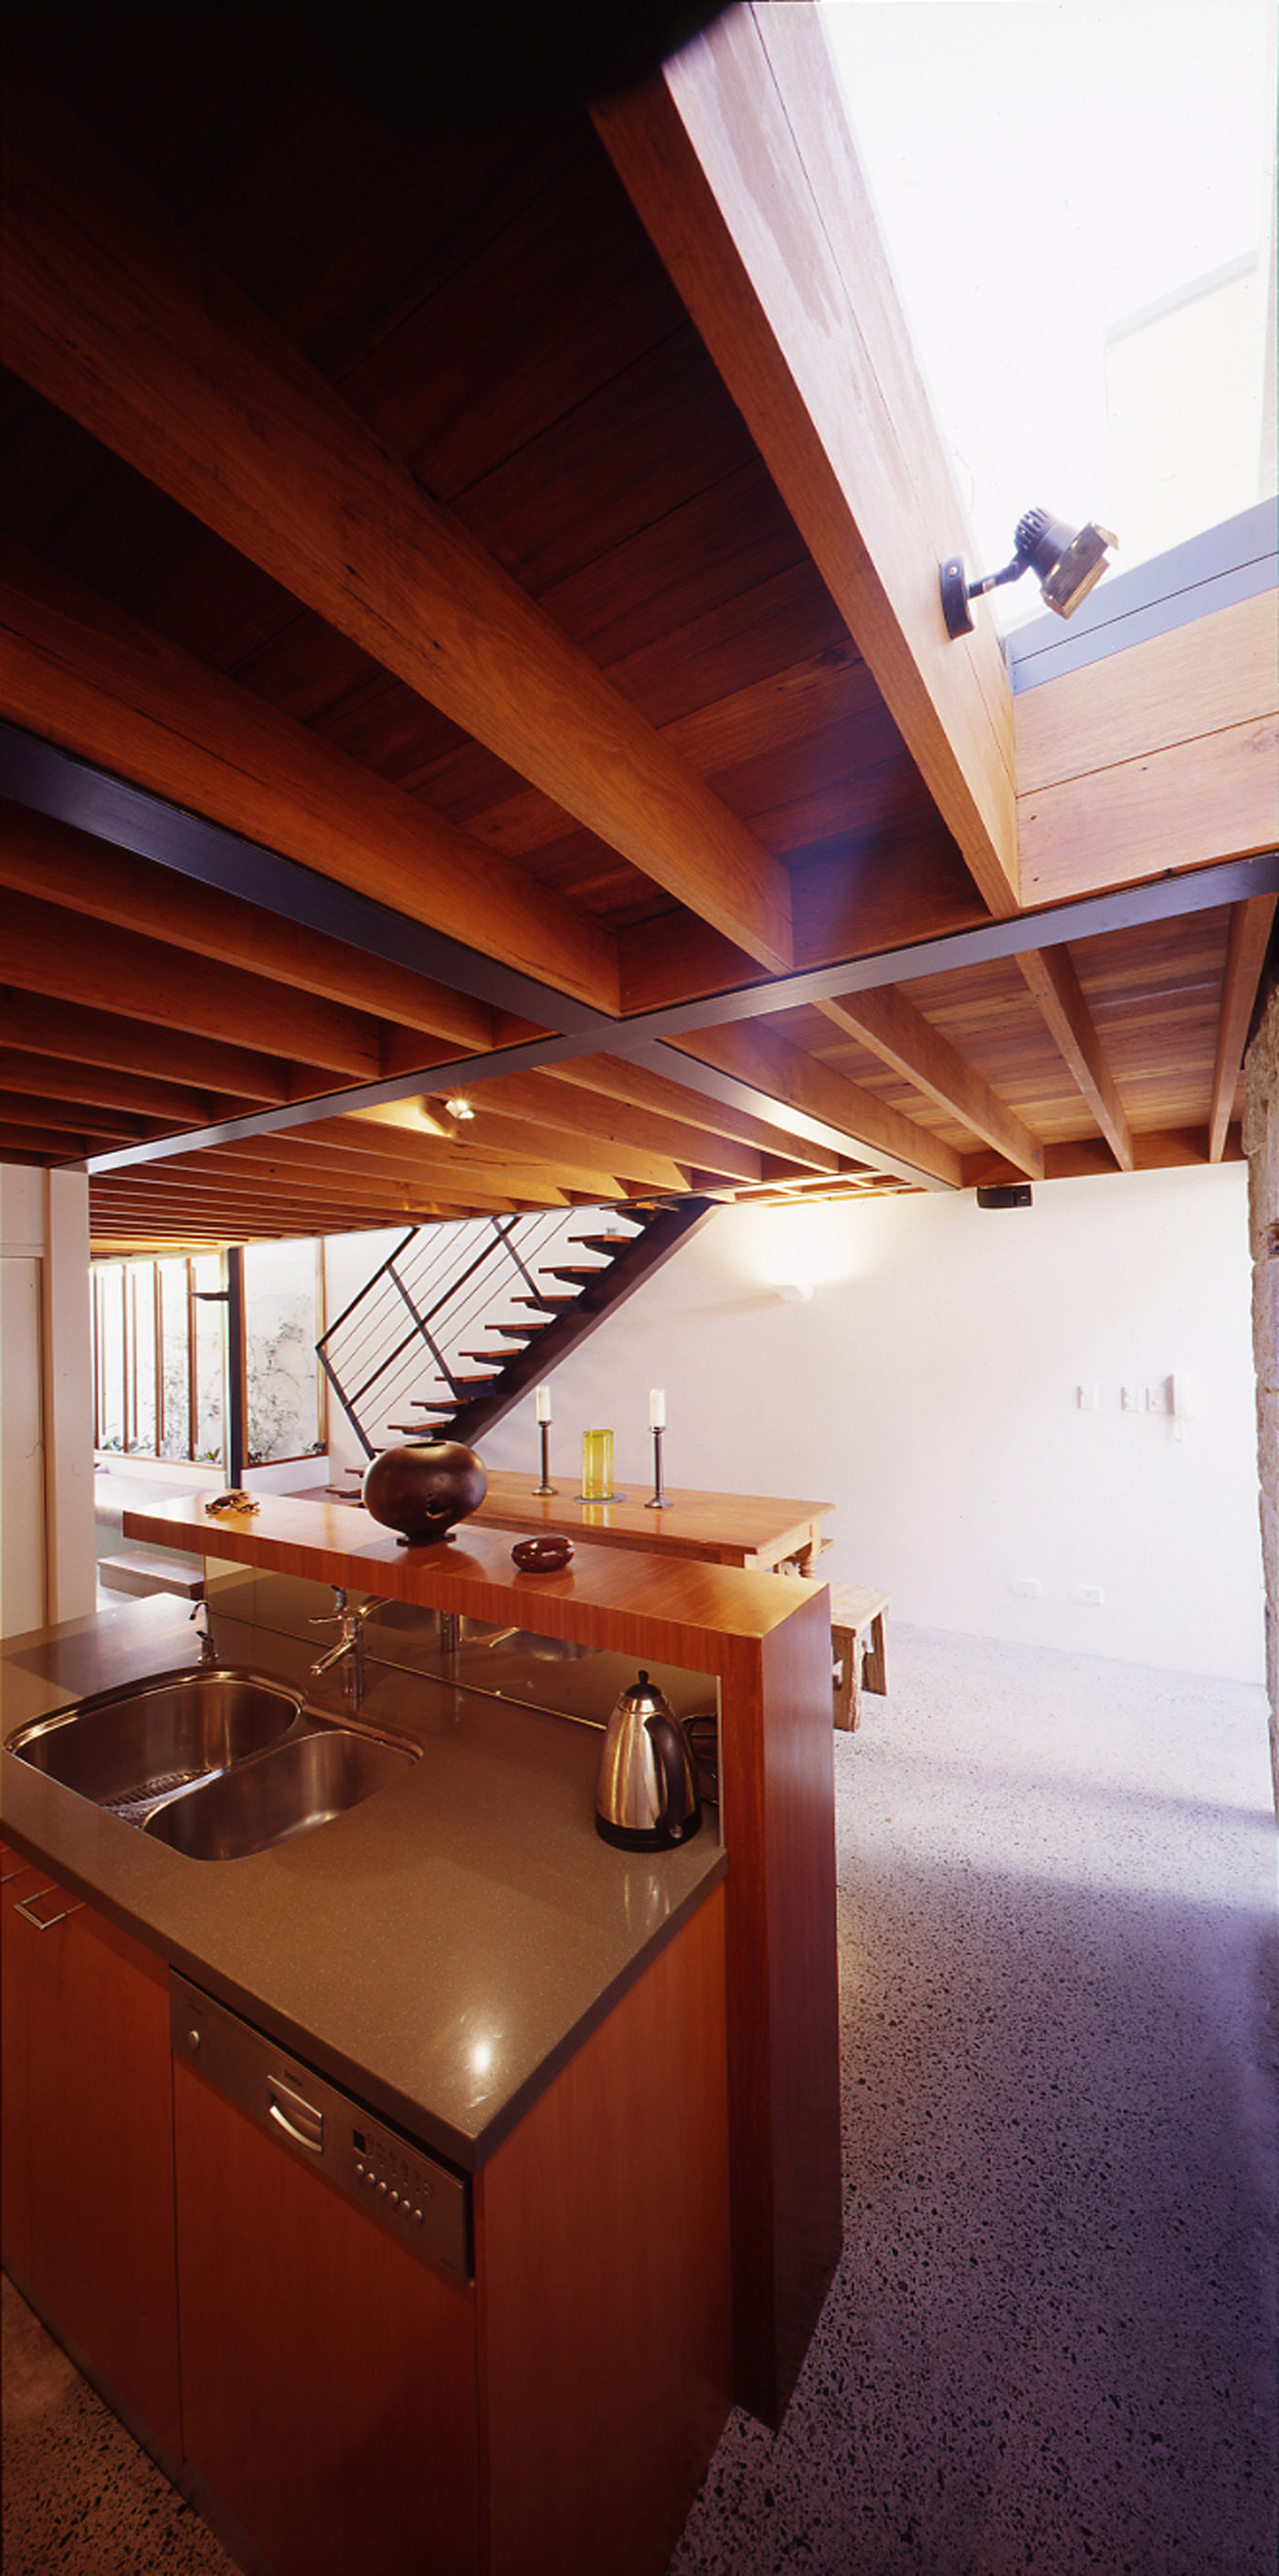 Bandi Drew House by Sydney award winning residential architecture firm Sam Crawford Architects. Exposed ironbark floor joists creates rhythm and provide character to the interior.